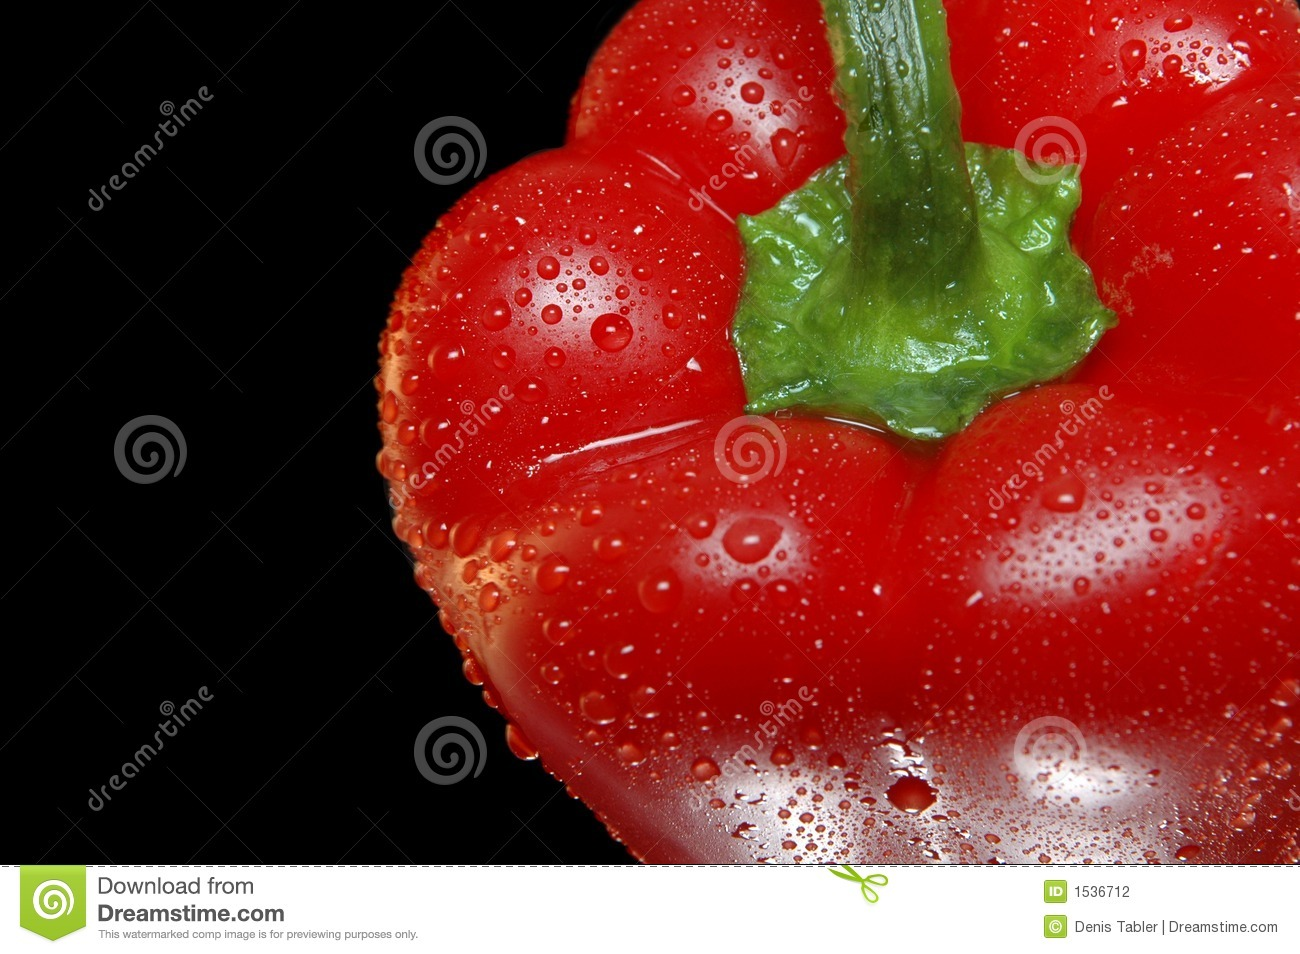 Red bell pepper closeup